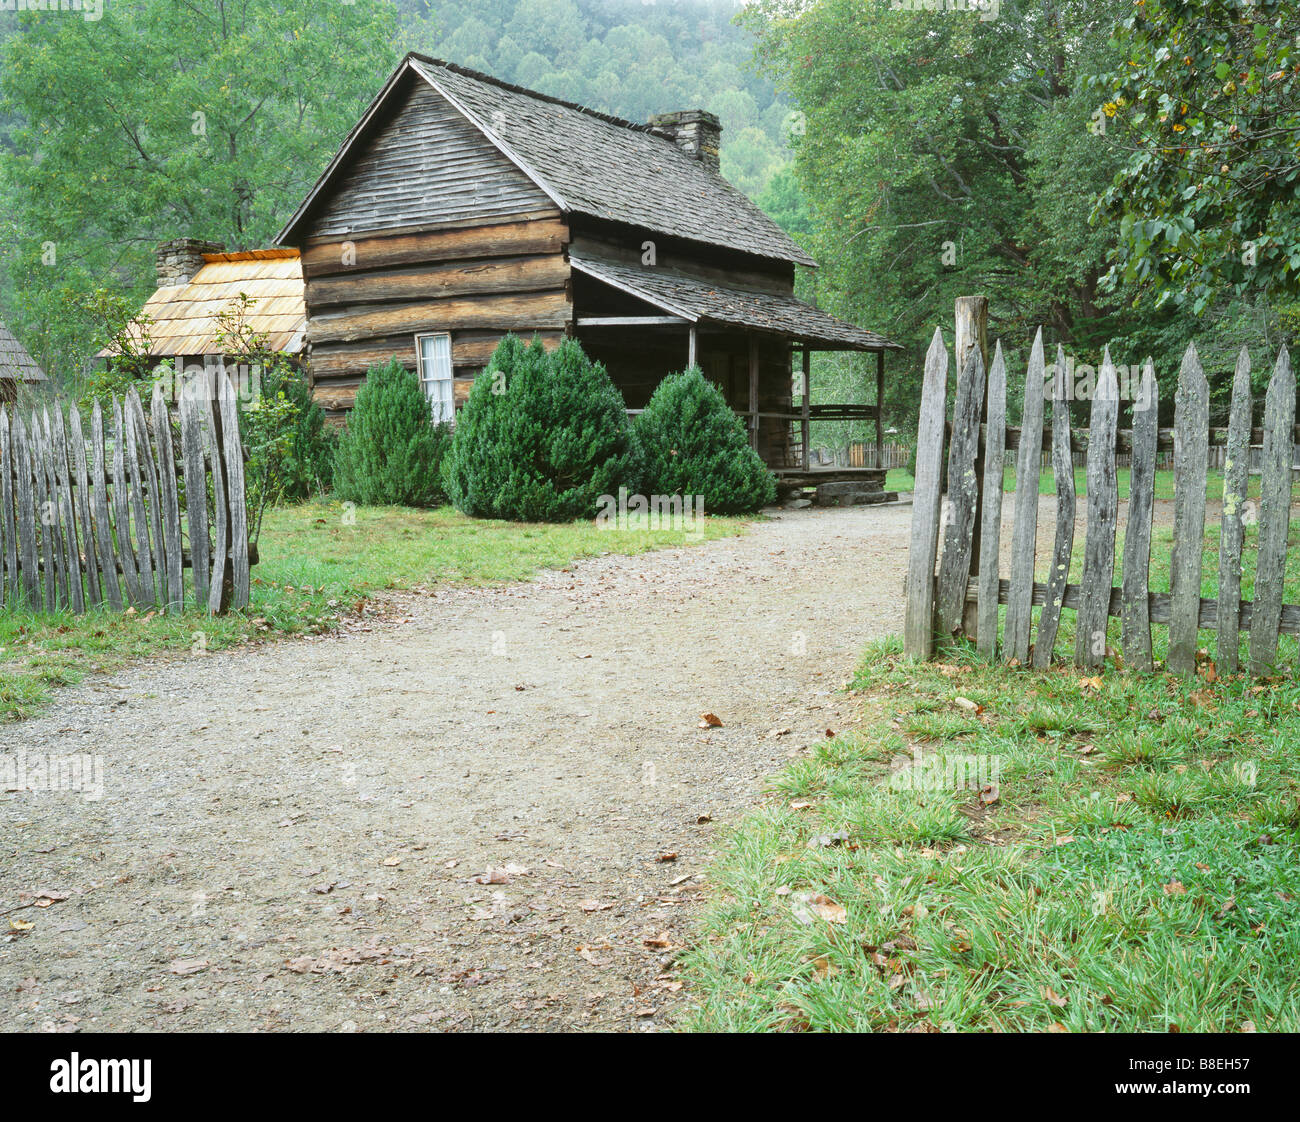 NORTH CAROLINA - Historic pioneer farmstead in the Oconaluftee area of Great Smoky Mountains National Park. - Stock Image